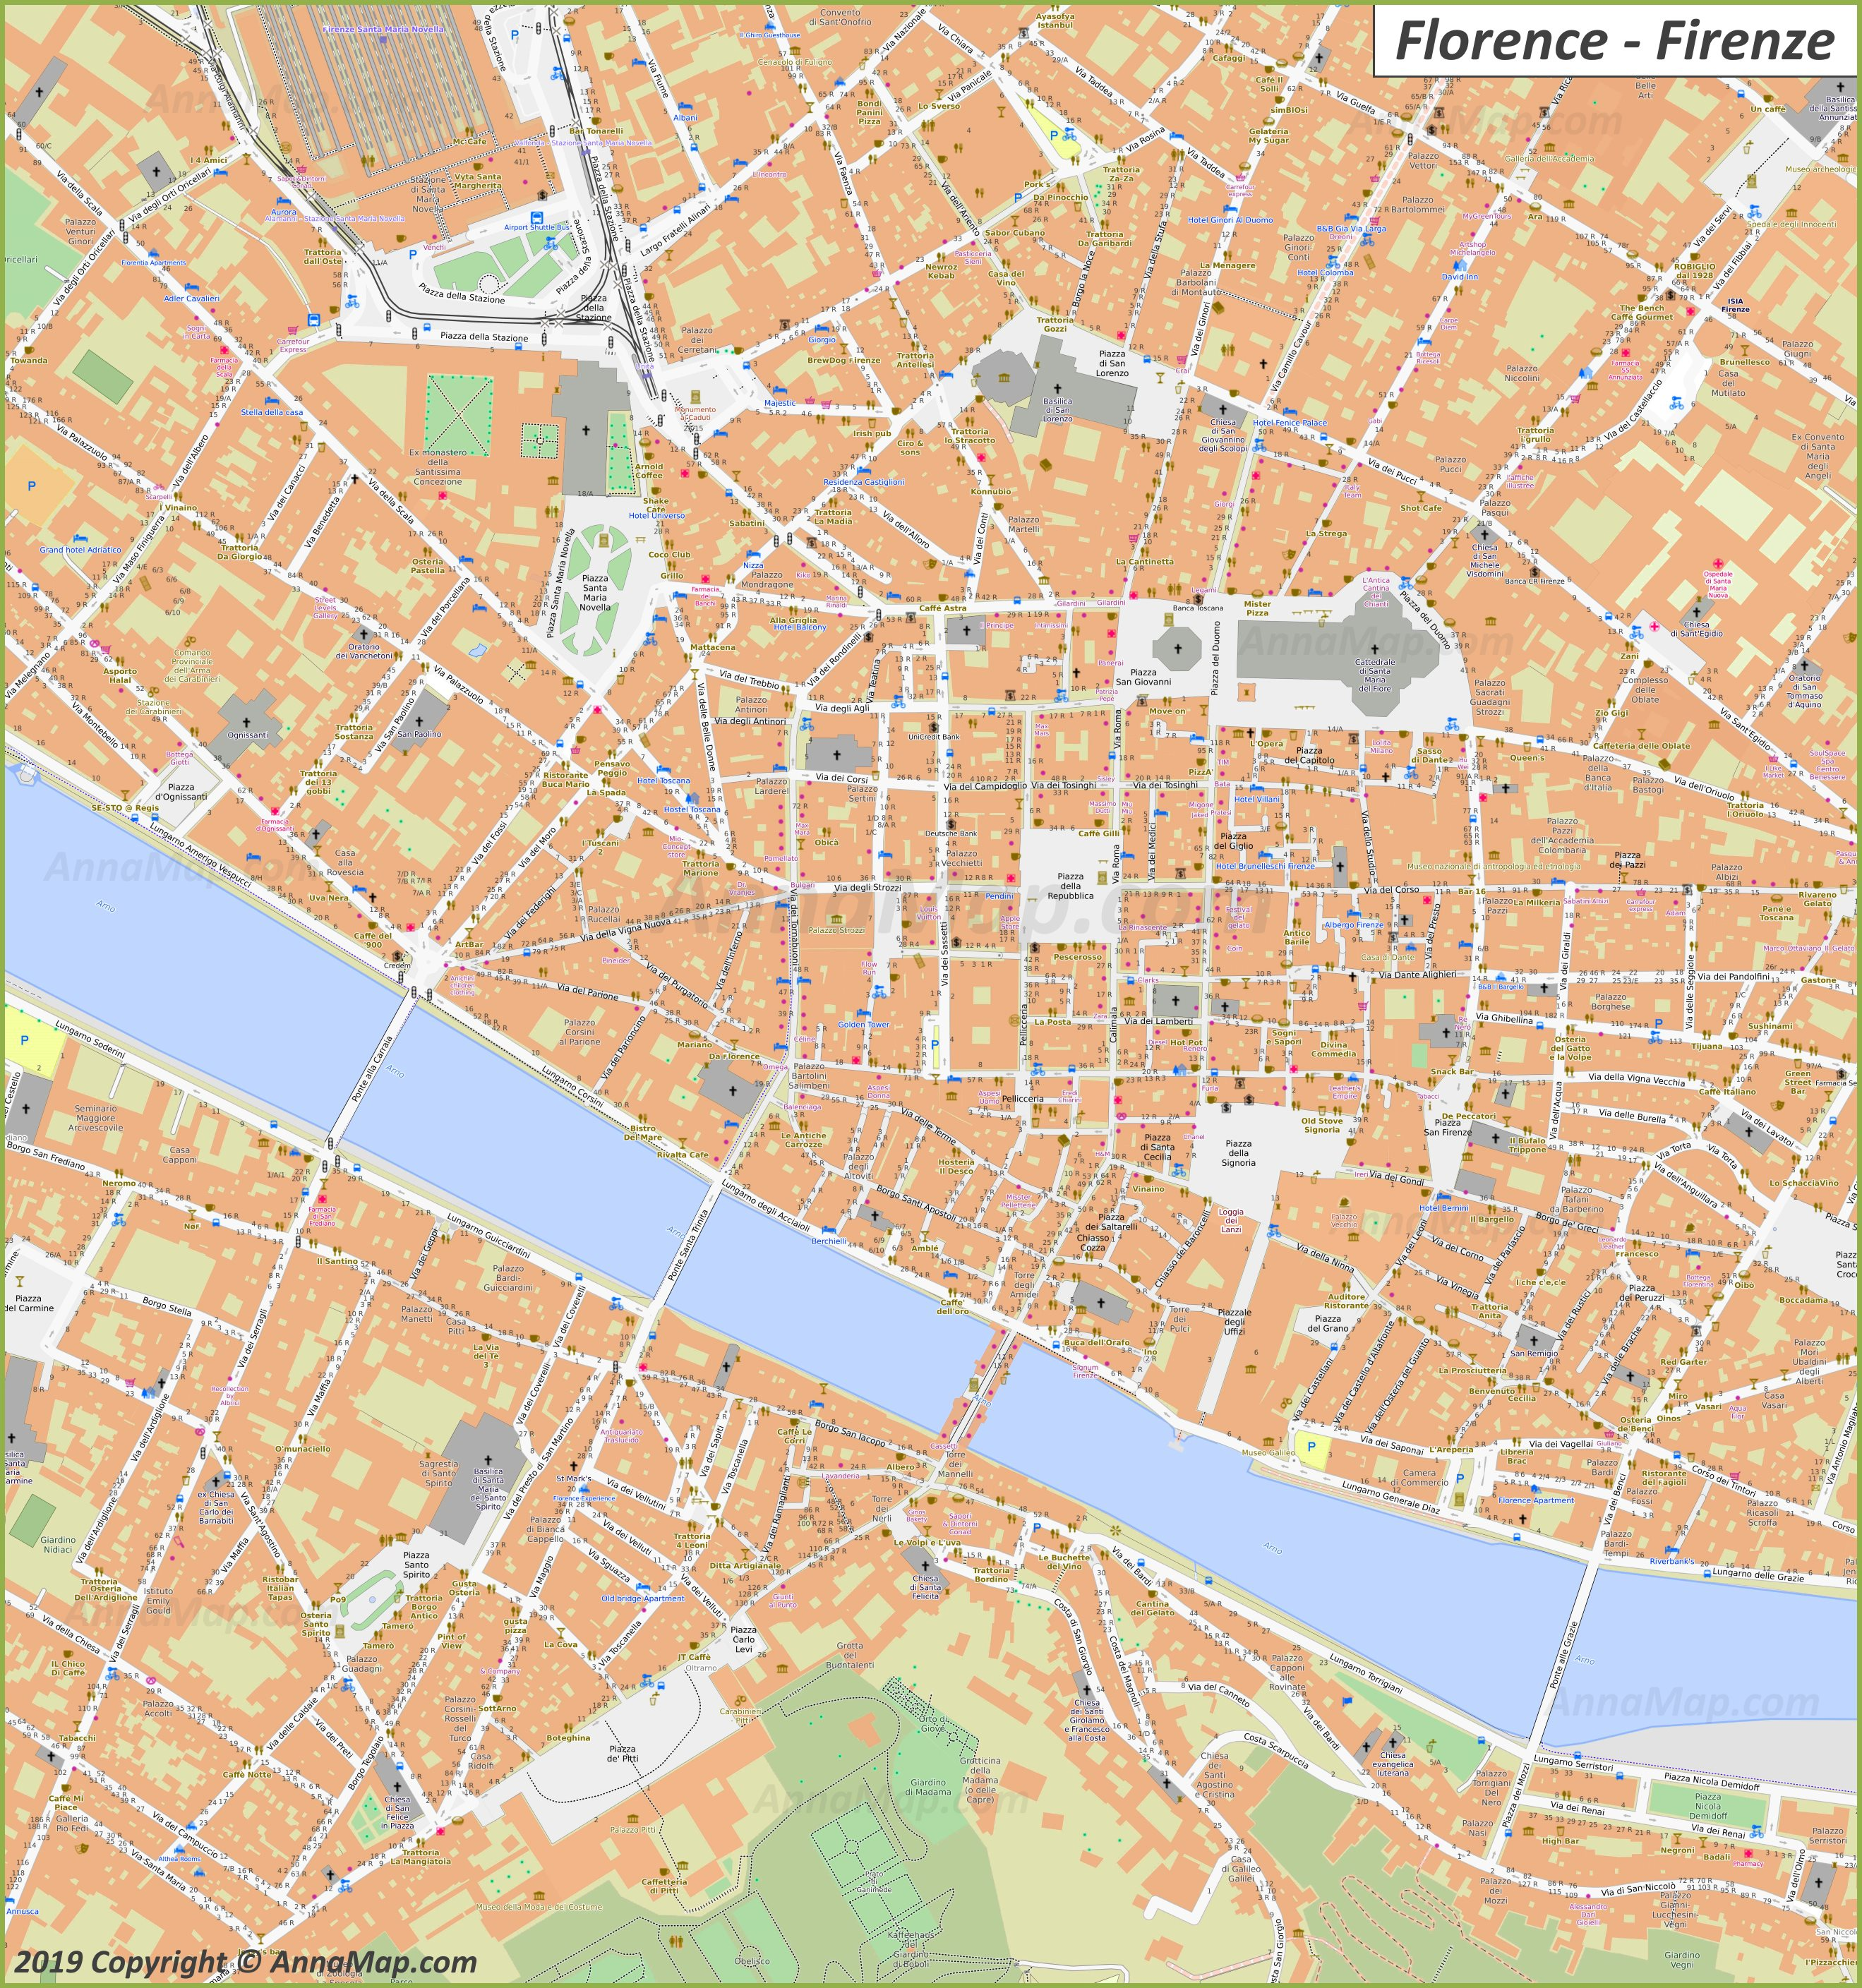 Detailed Tourist Maps Of Florence Italy Free Printable